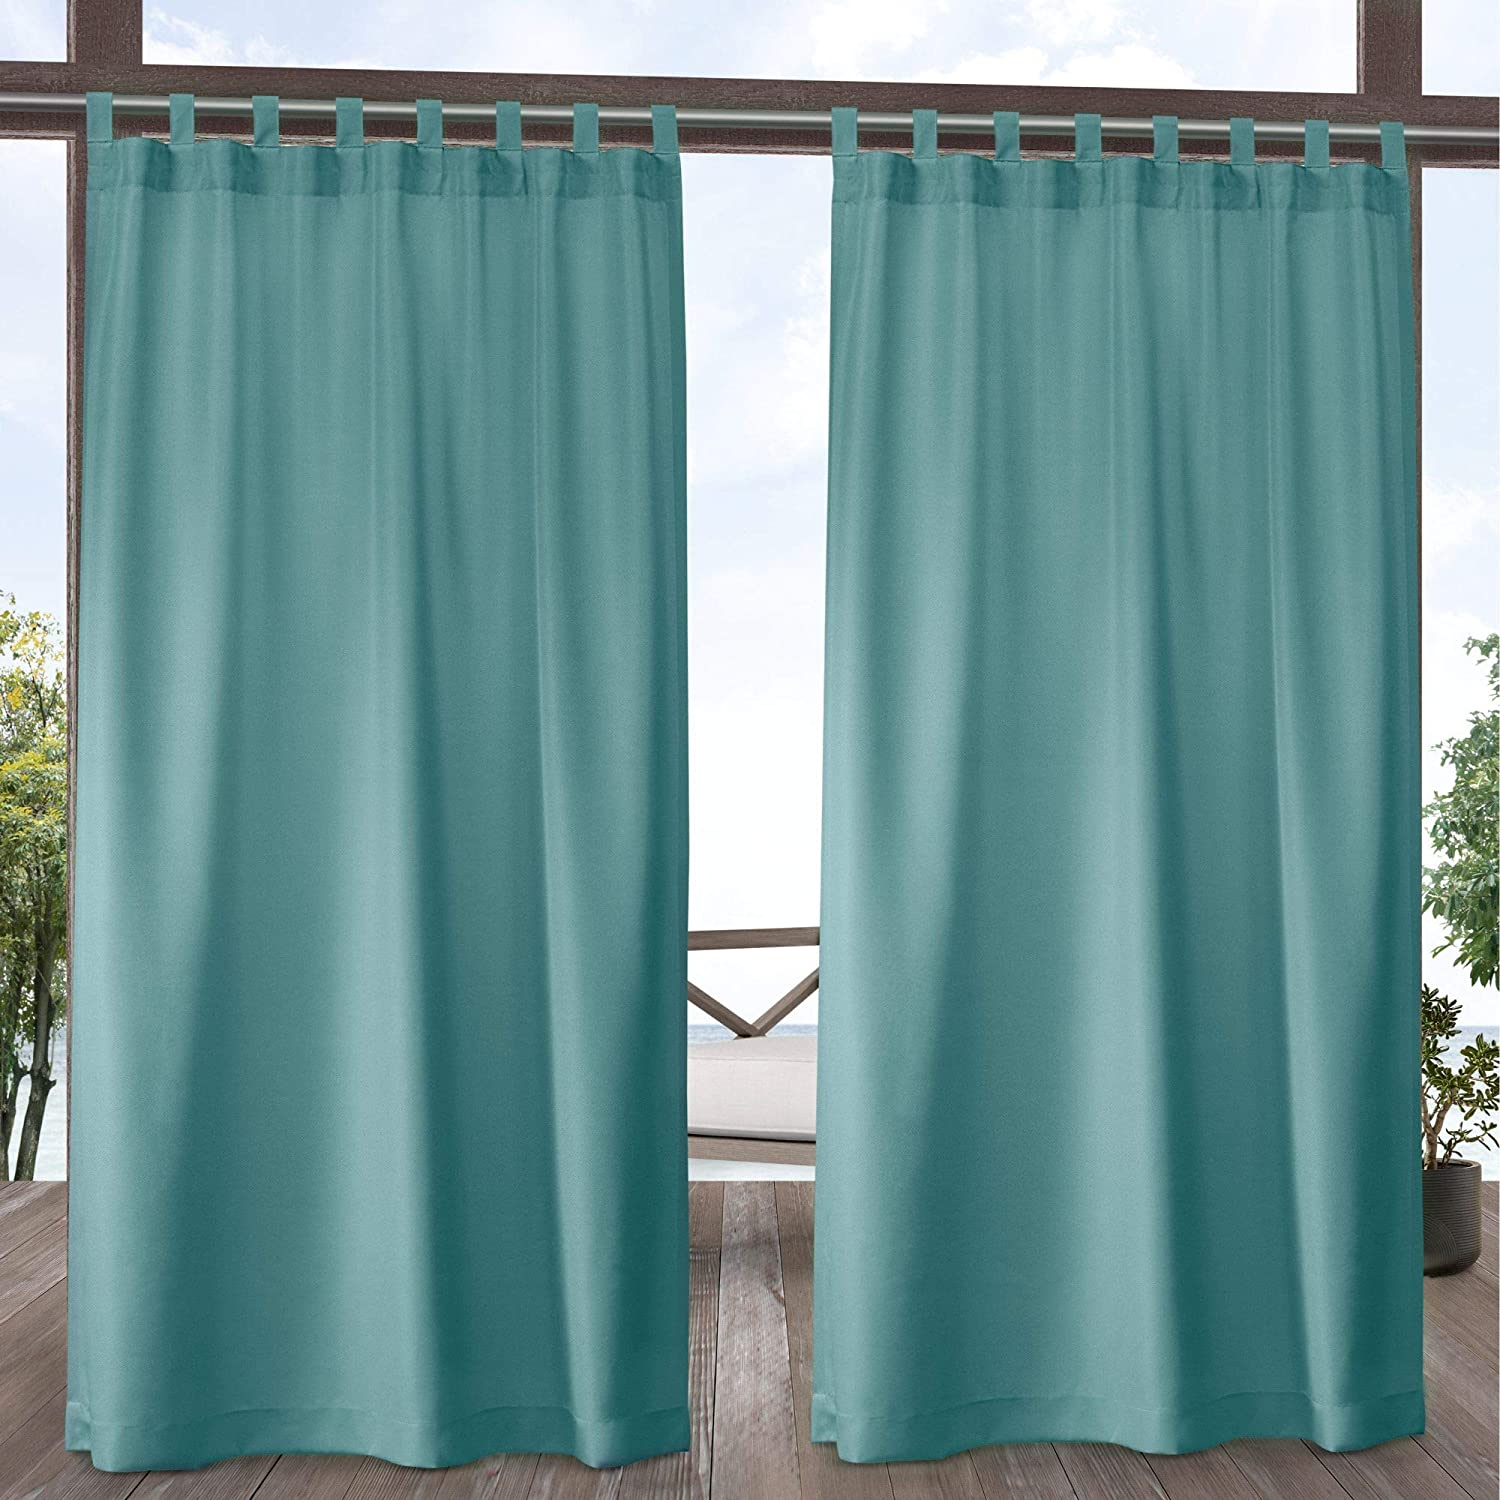 Exclusive Max 87% OFF Home Curtains Indoor Outdoor Tab Solid Top NEW before selling ☆ Cabana Curt